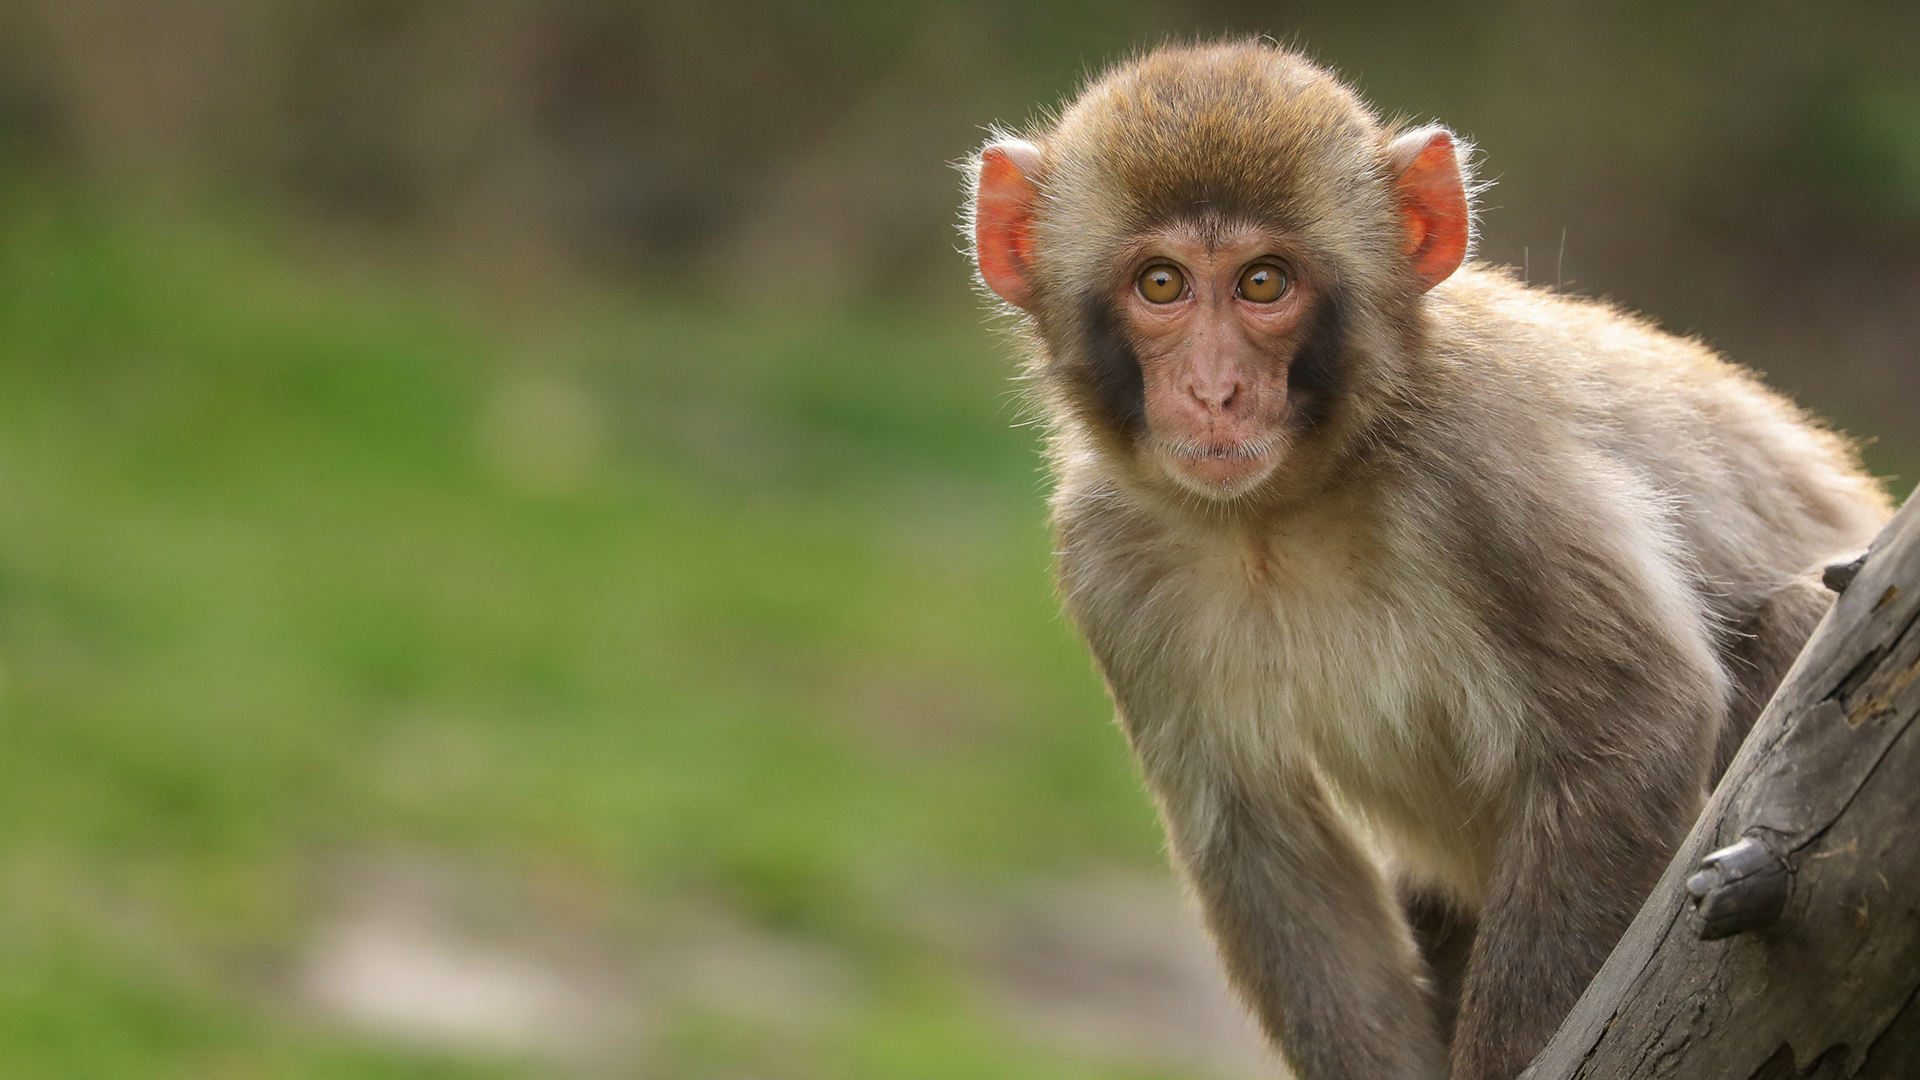 A monkey in India stole COVID-19 blood samples from a lab worker ...